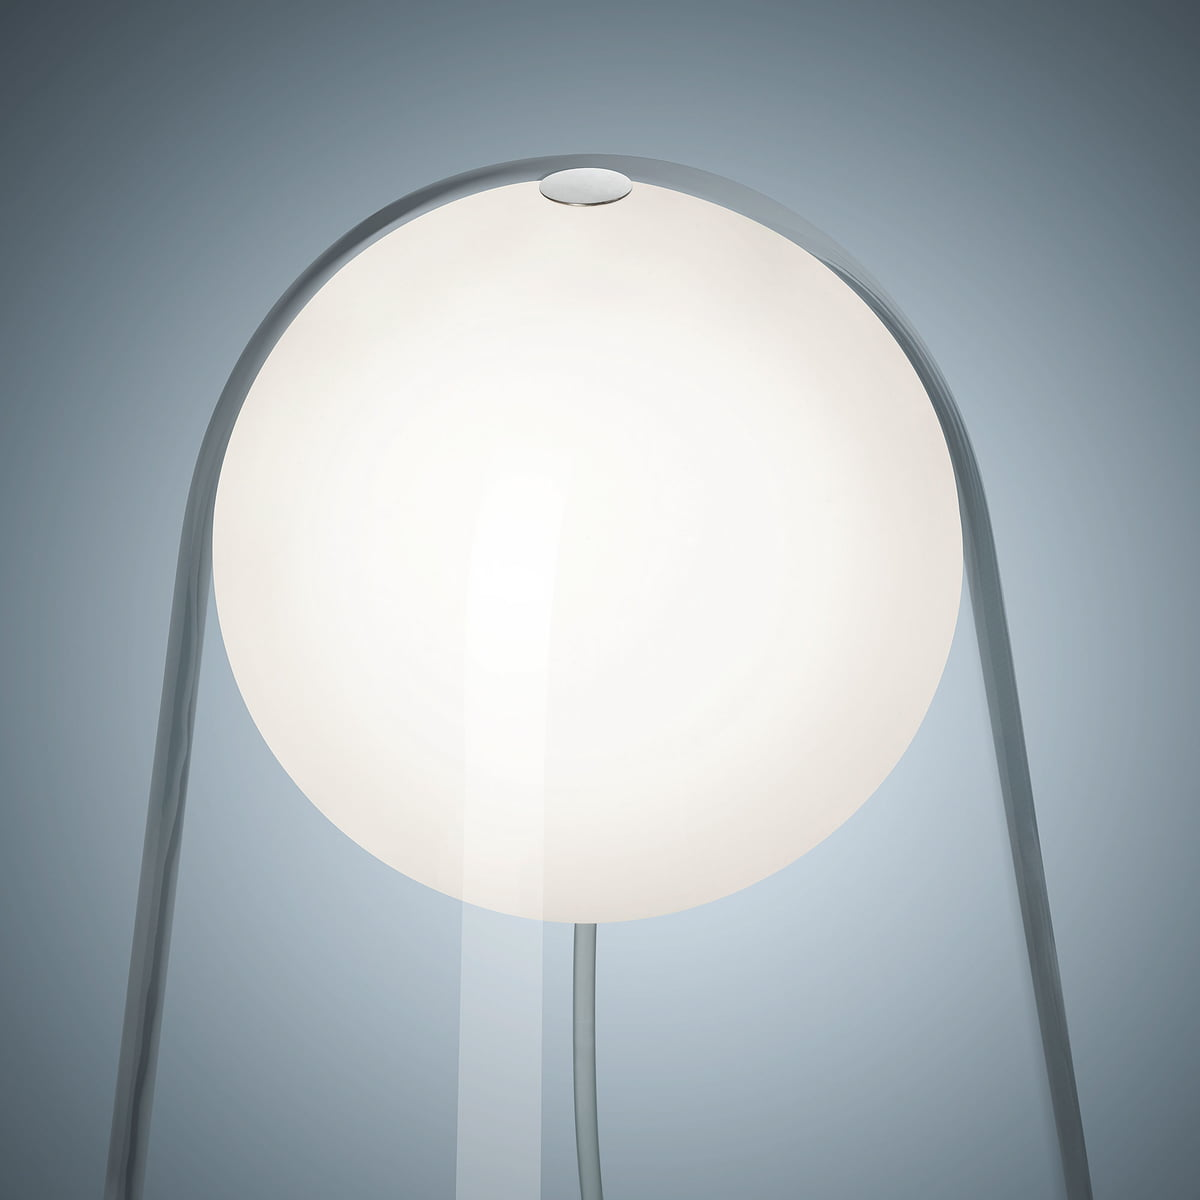 Satellight Table Lamp by Foscarini | Shop